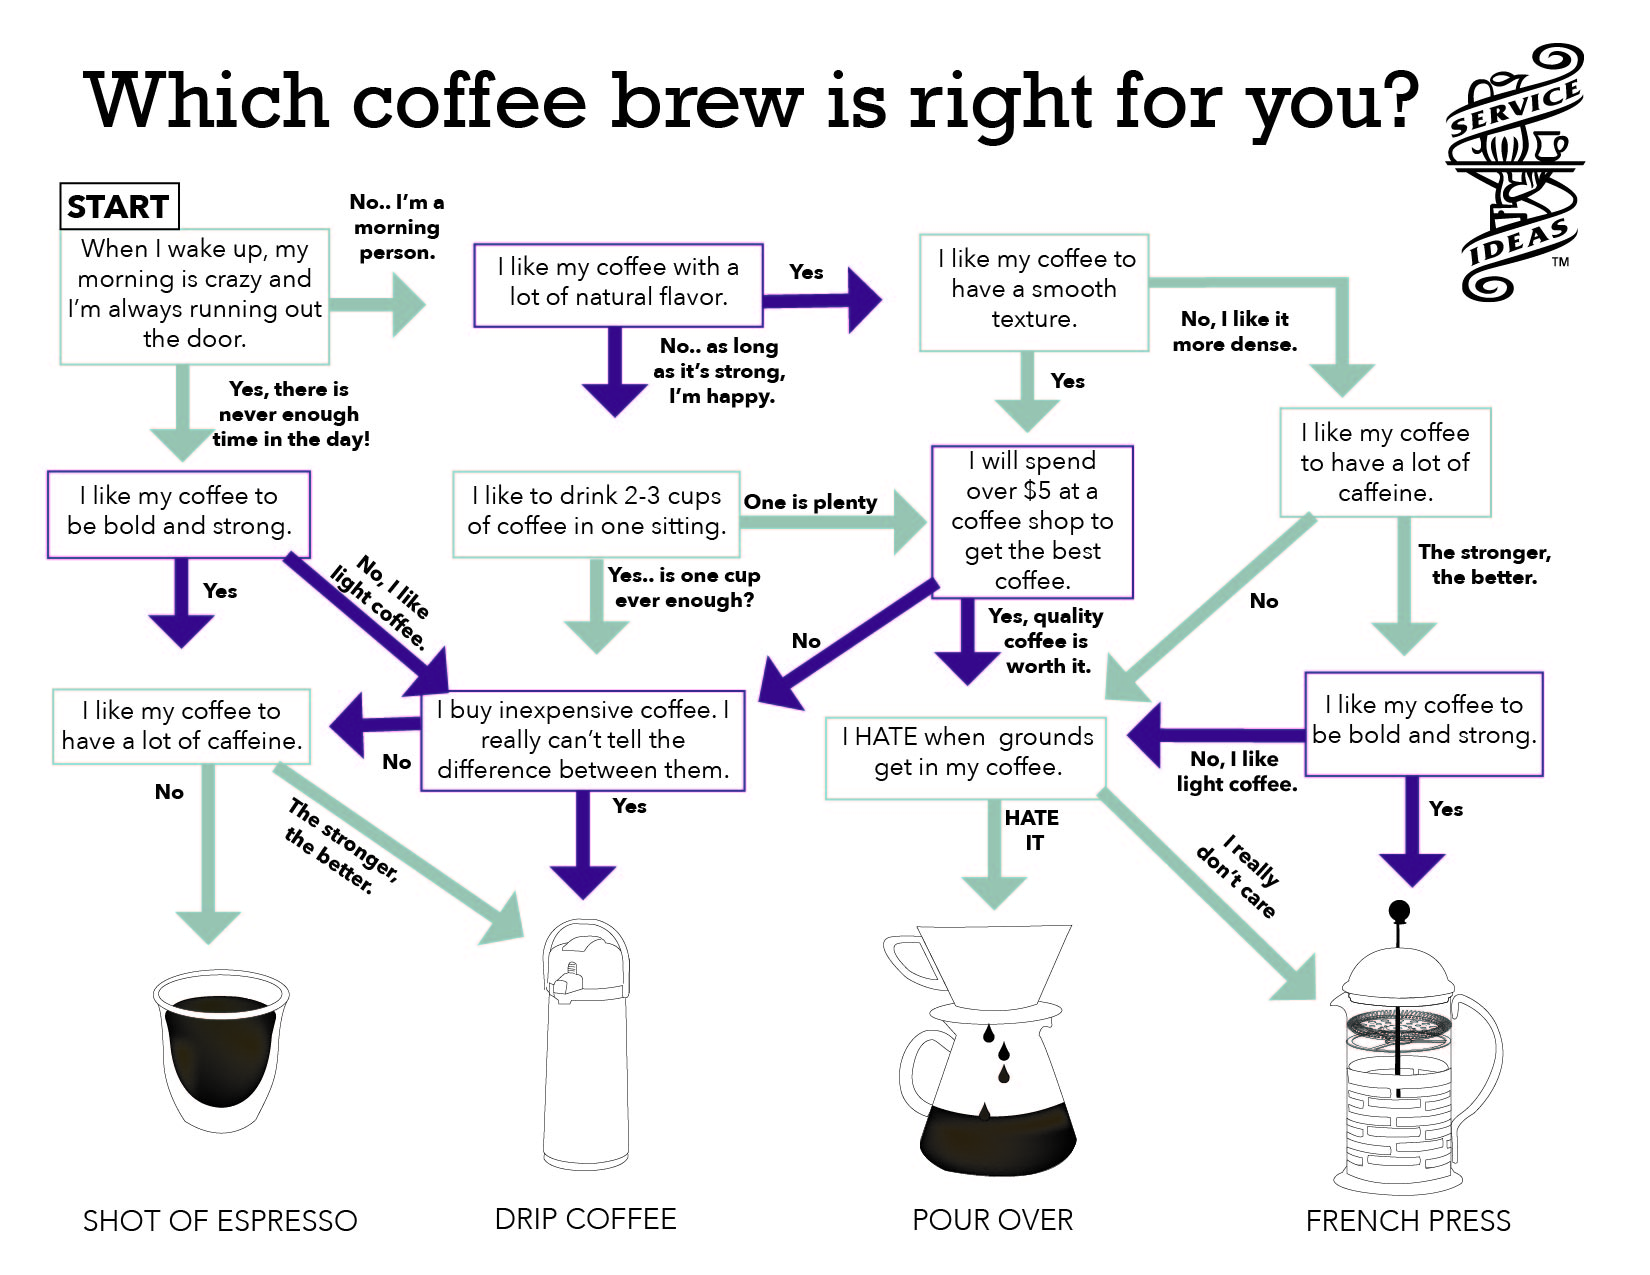 Coffee Brew_Infographic-01-1